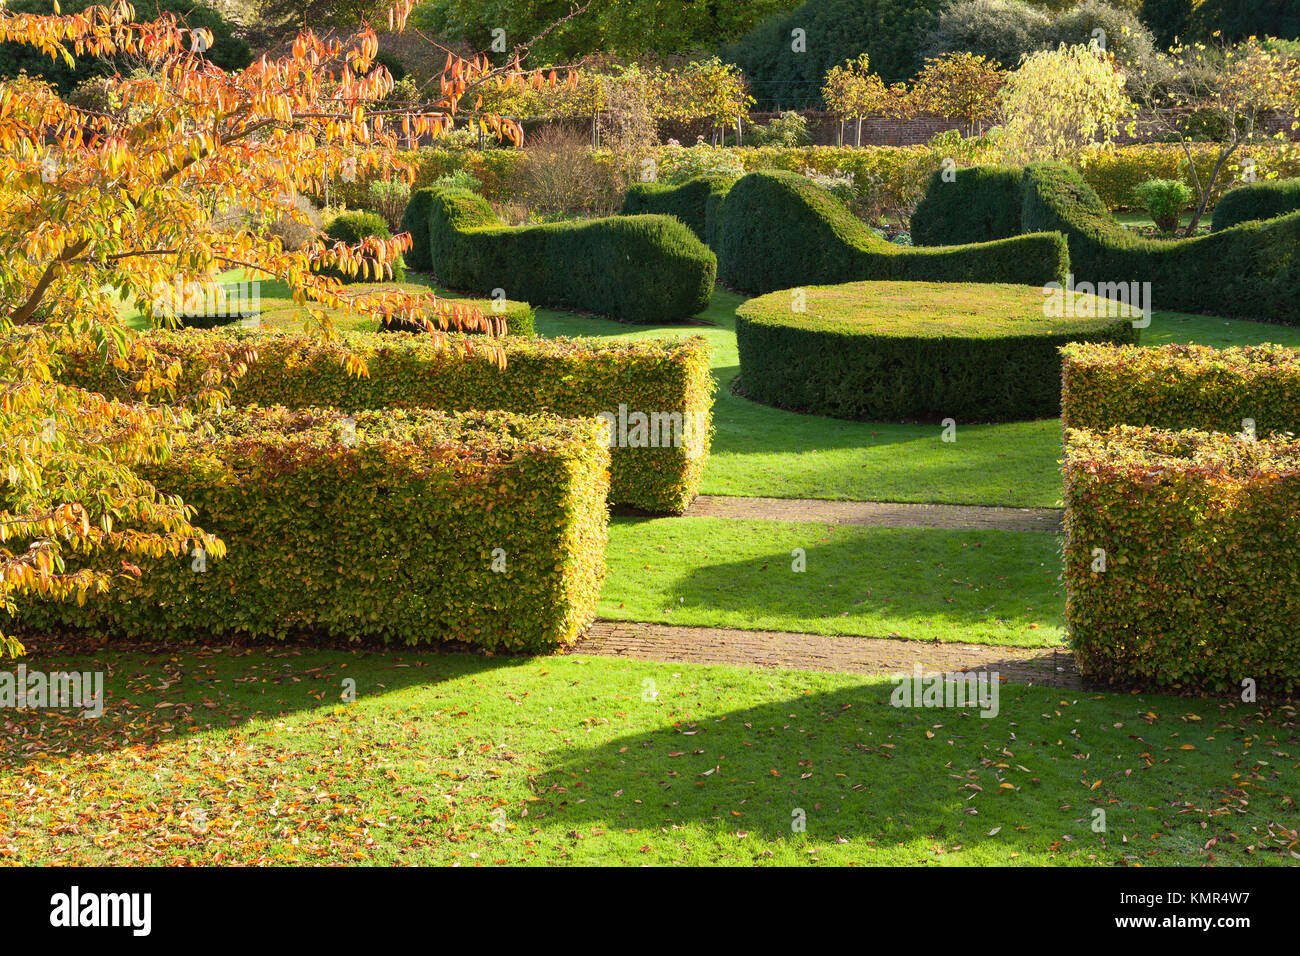 Piet oudolf design stock photos piet oudolf design stock images alamy for Garden design yorkshire